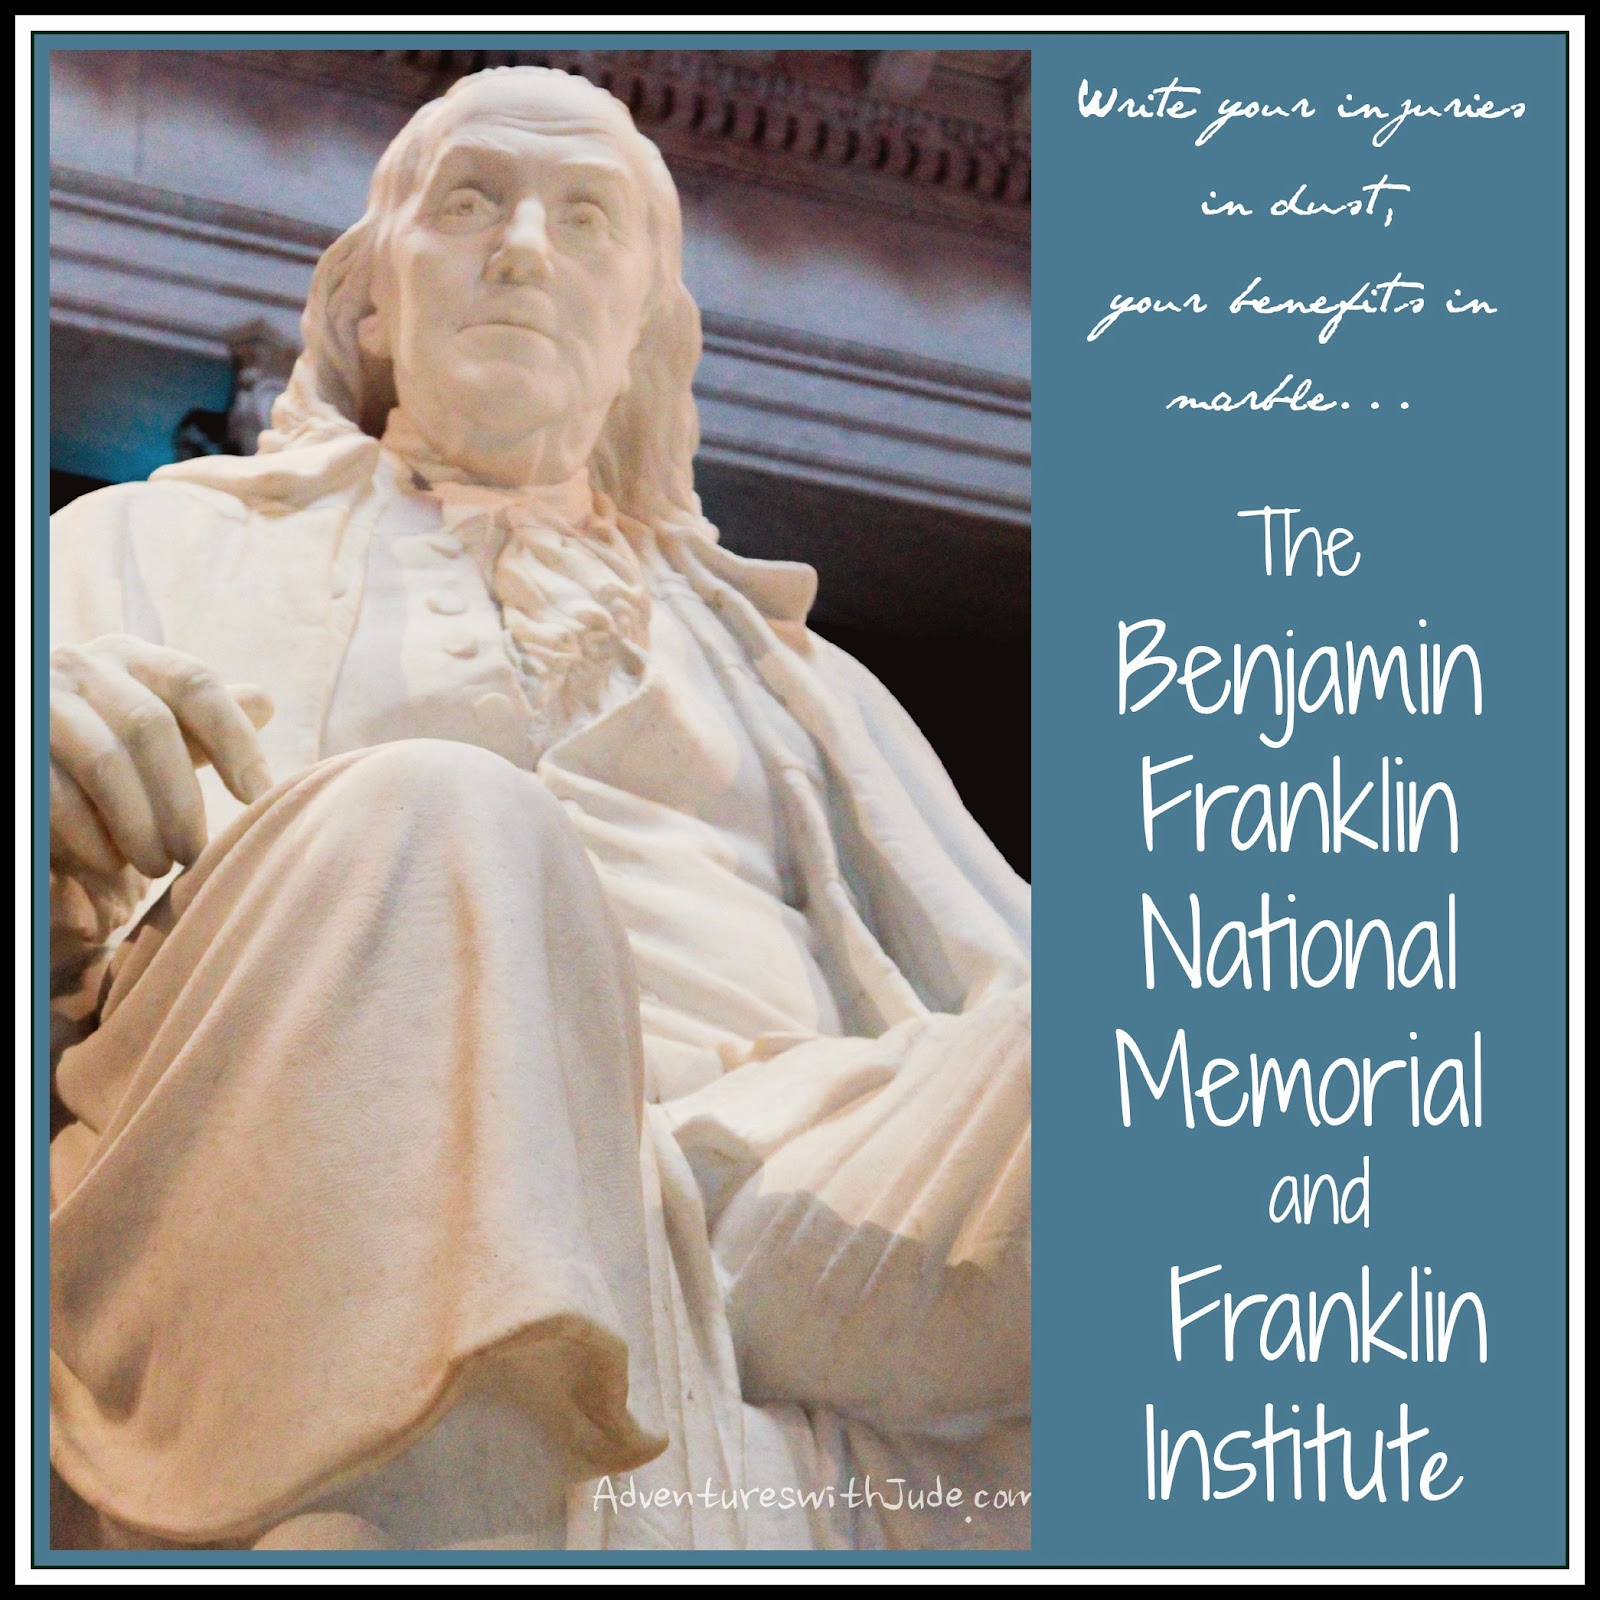 Write your injuries in dust, your benefits in marble - Ben Franklin